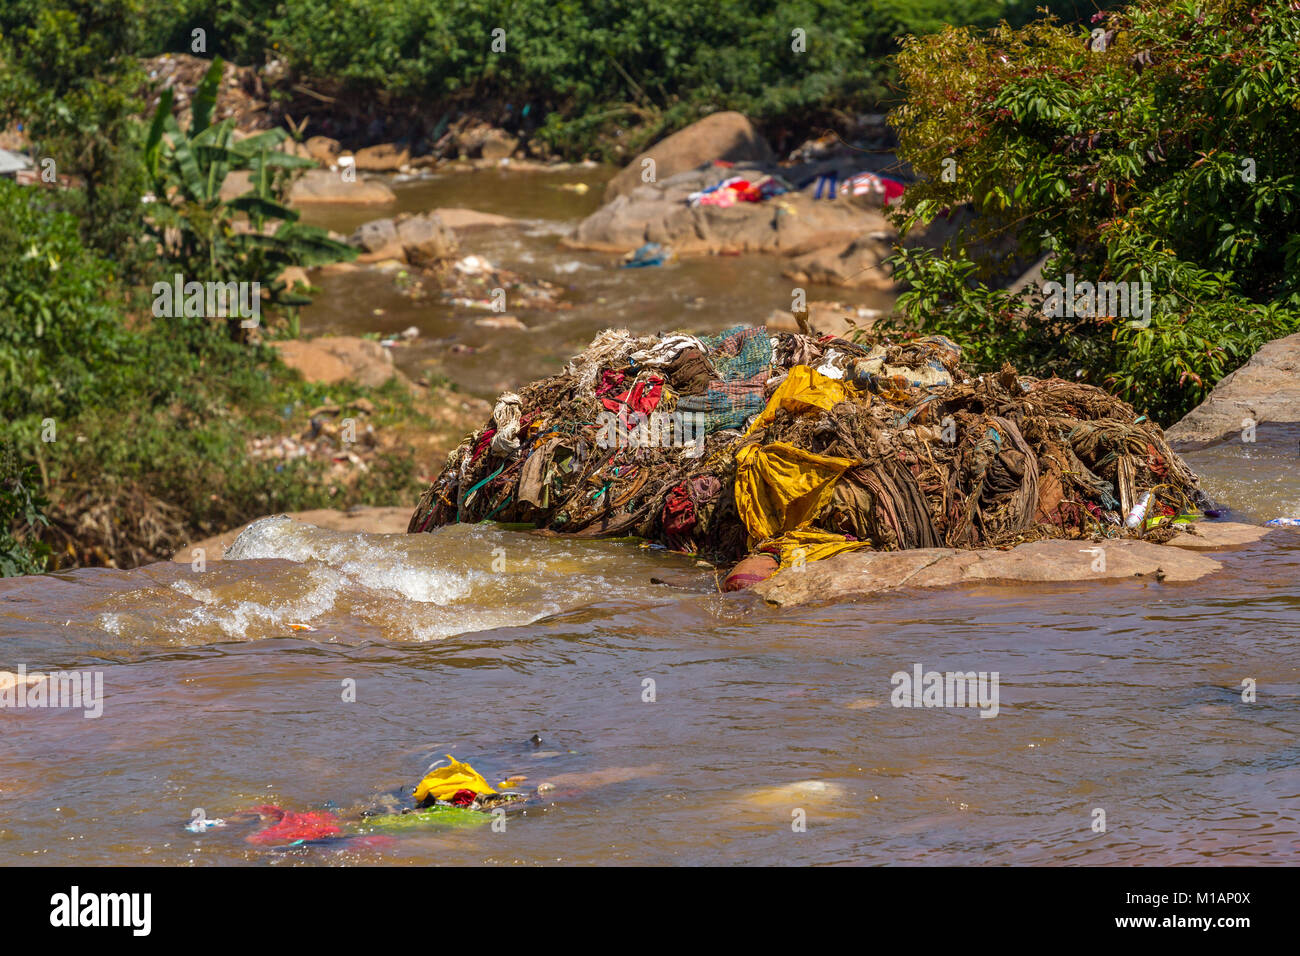 Water rubbish pollution with plastic and other floating stuffs in the chao phraya river in Bangkok, Thailand - Stock Image